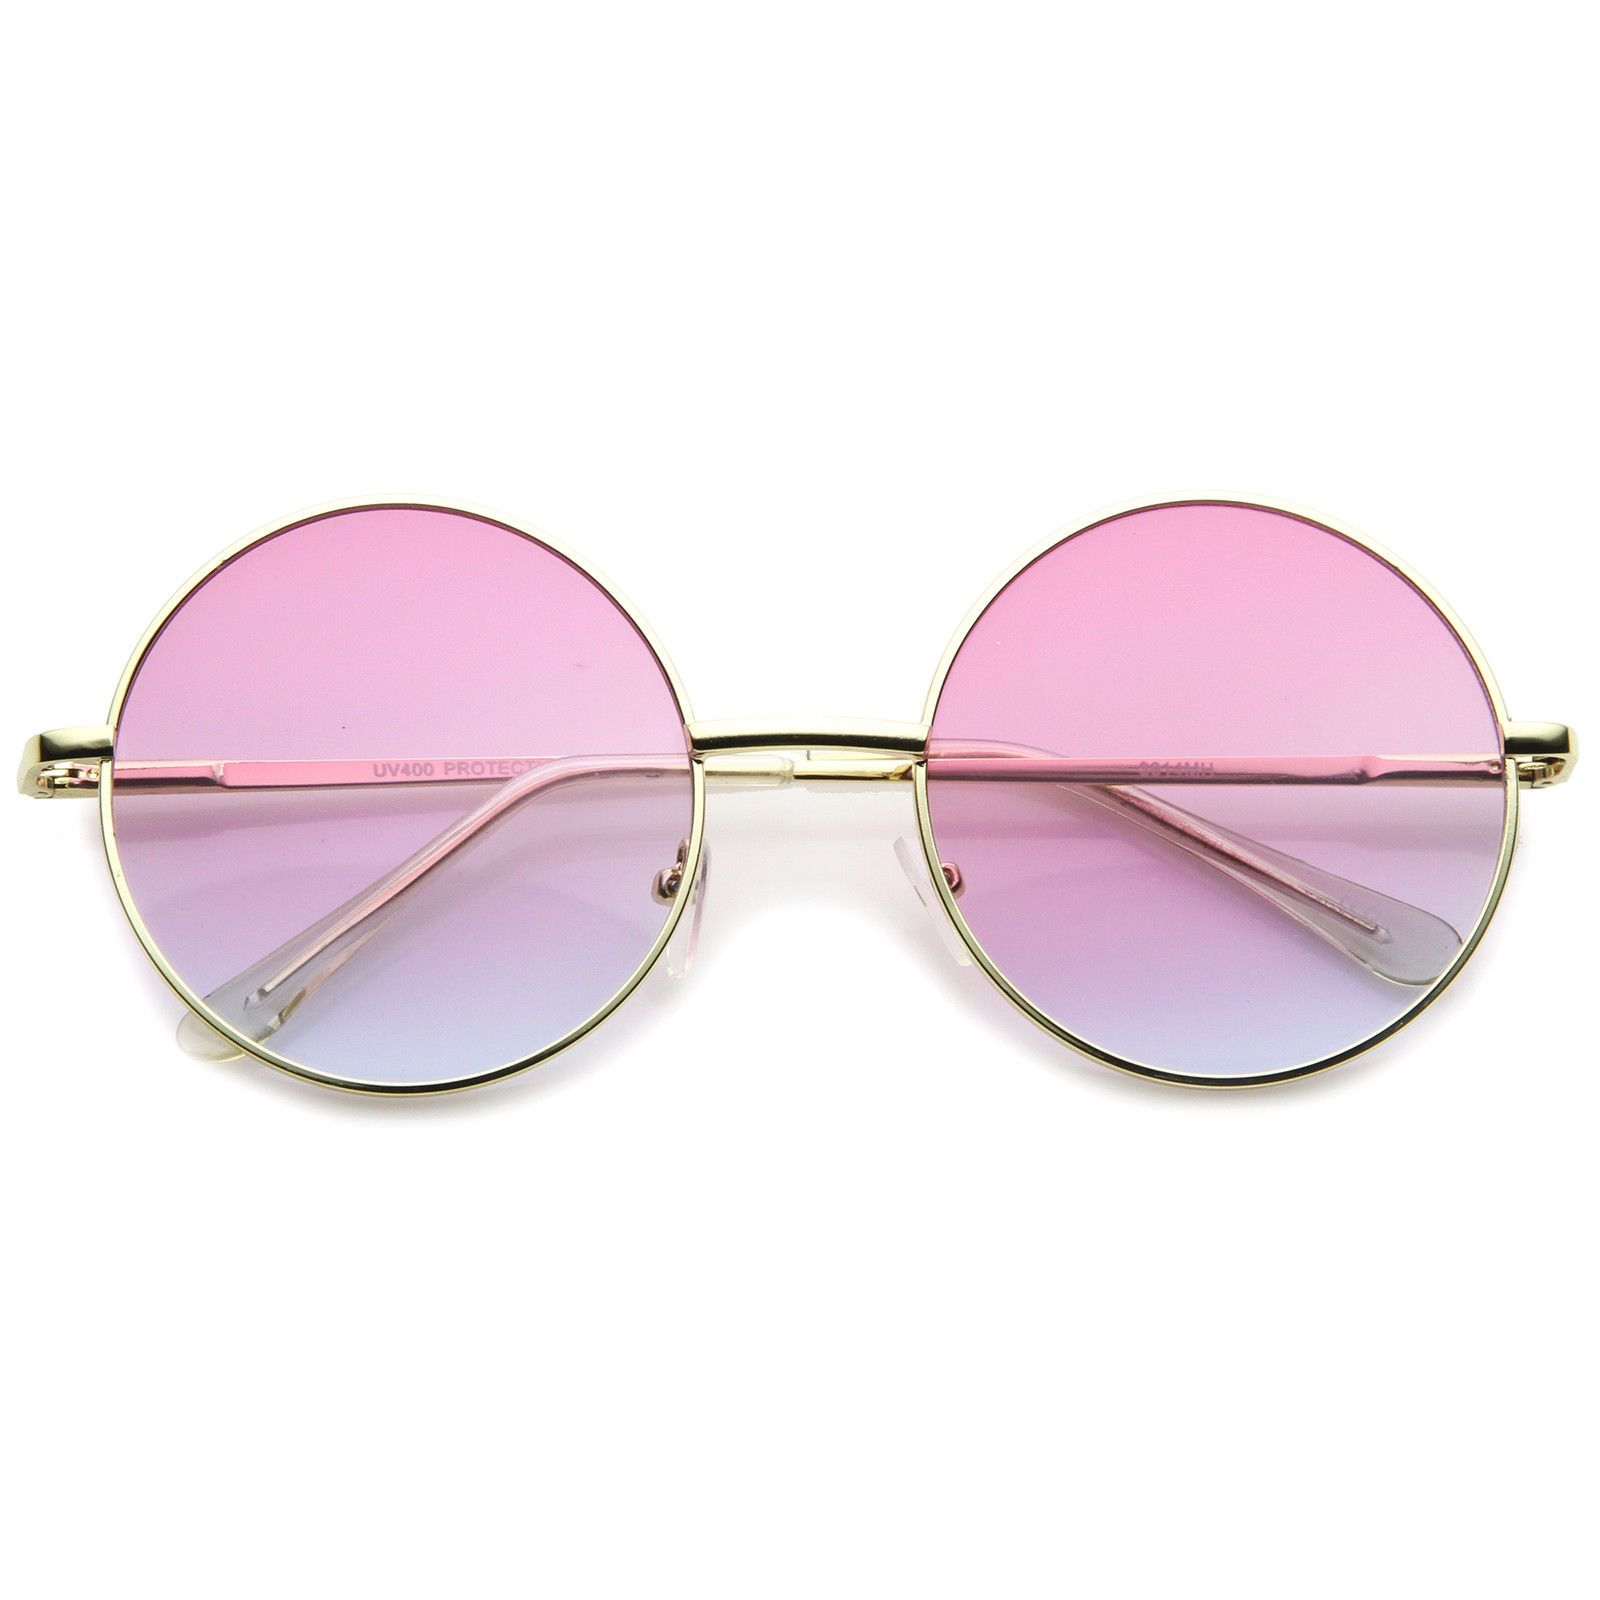 8ff704c9b $9.99 - Womens Metal Round Sunglasses With Uv400 Protected Gradient Lens  #ebay #Fashion